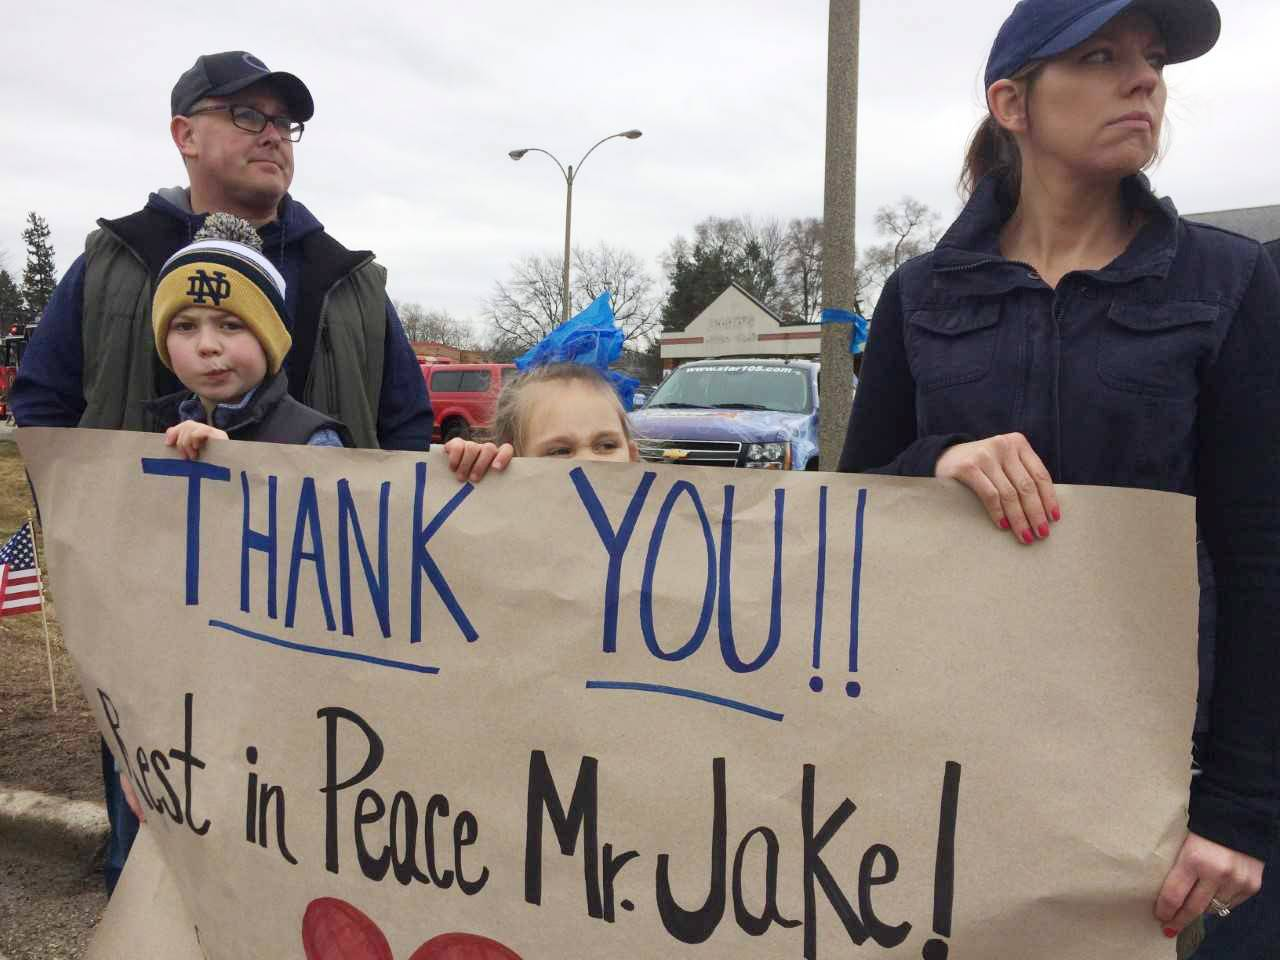 Community shows support at McHenry County deputy's funeral procession